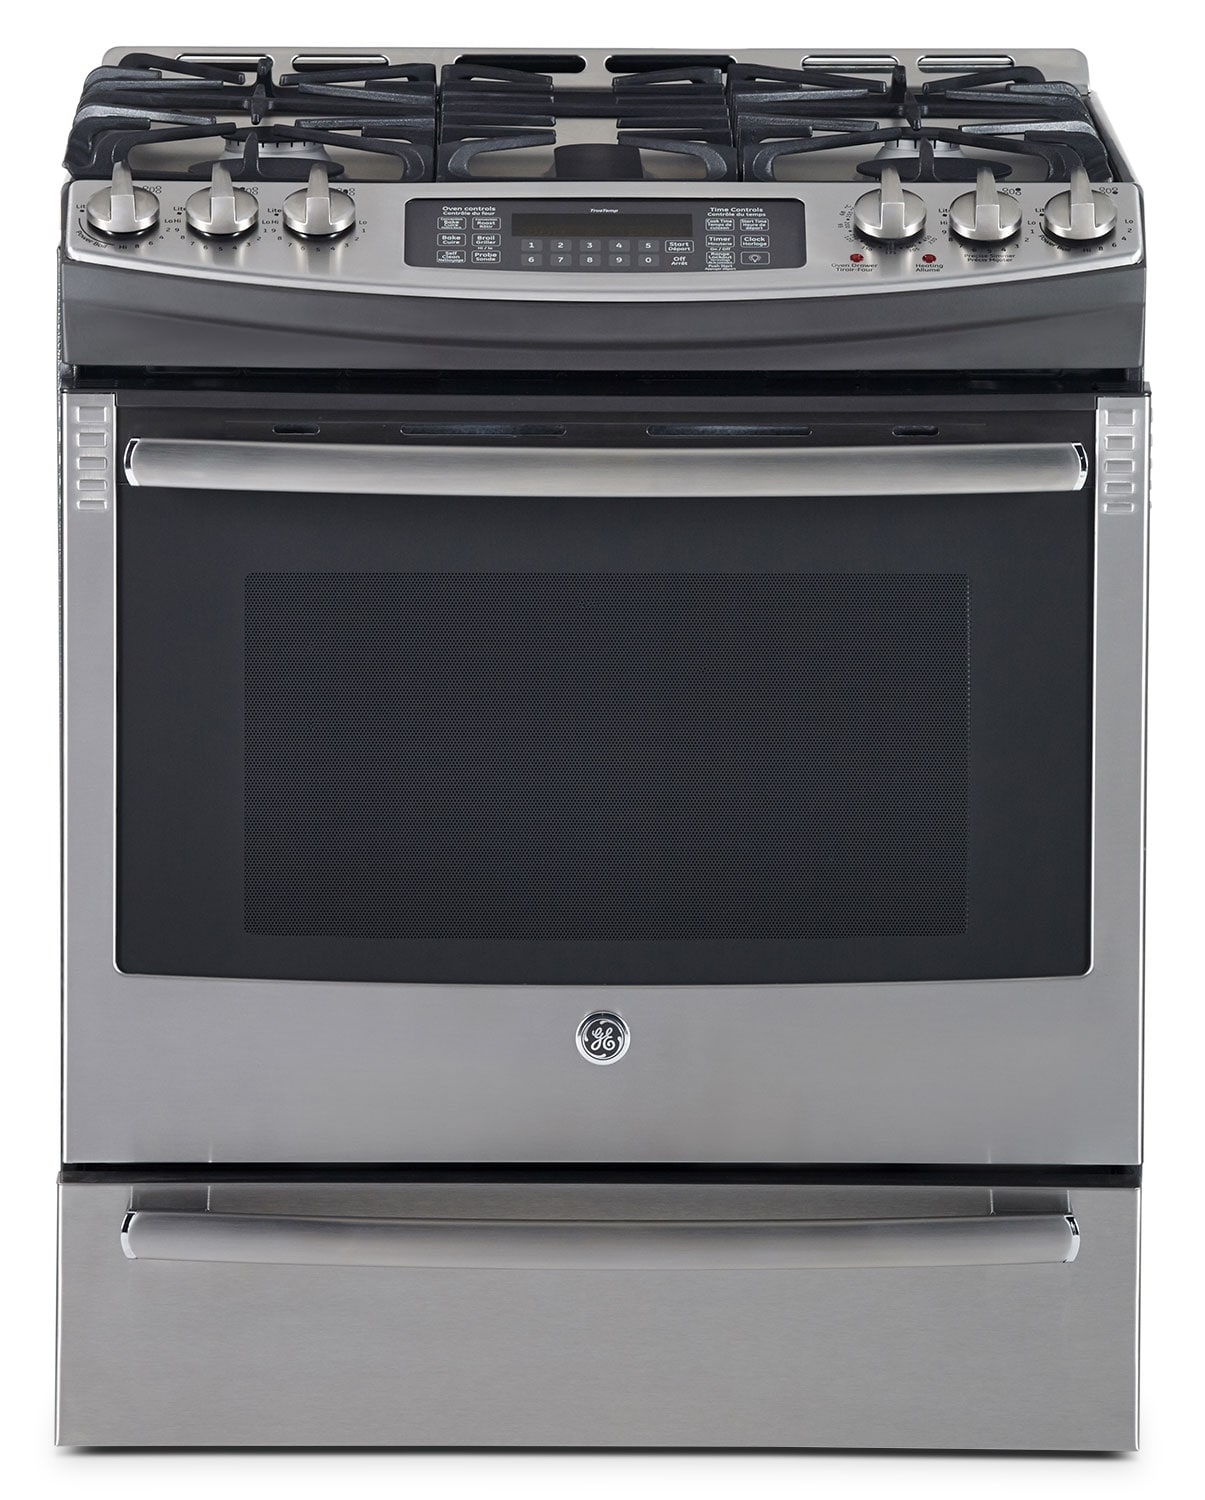 Cooking Products - GE Stainless Steel Slide-In Gas Convection Range (6.3 Cu. Ft.) - PCGS910SEFSS